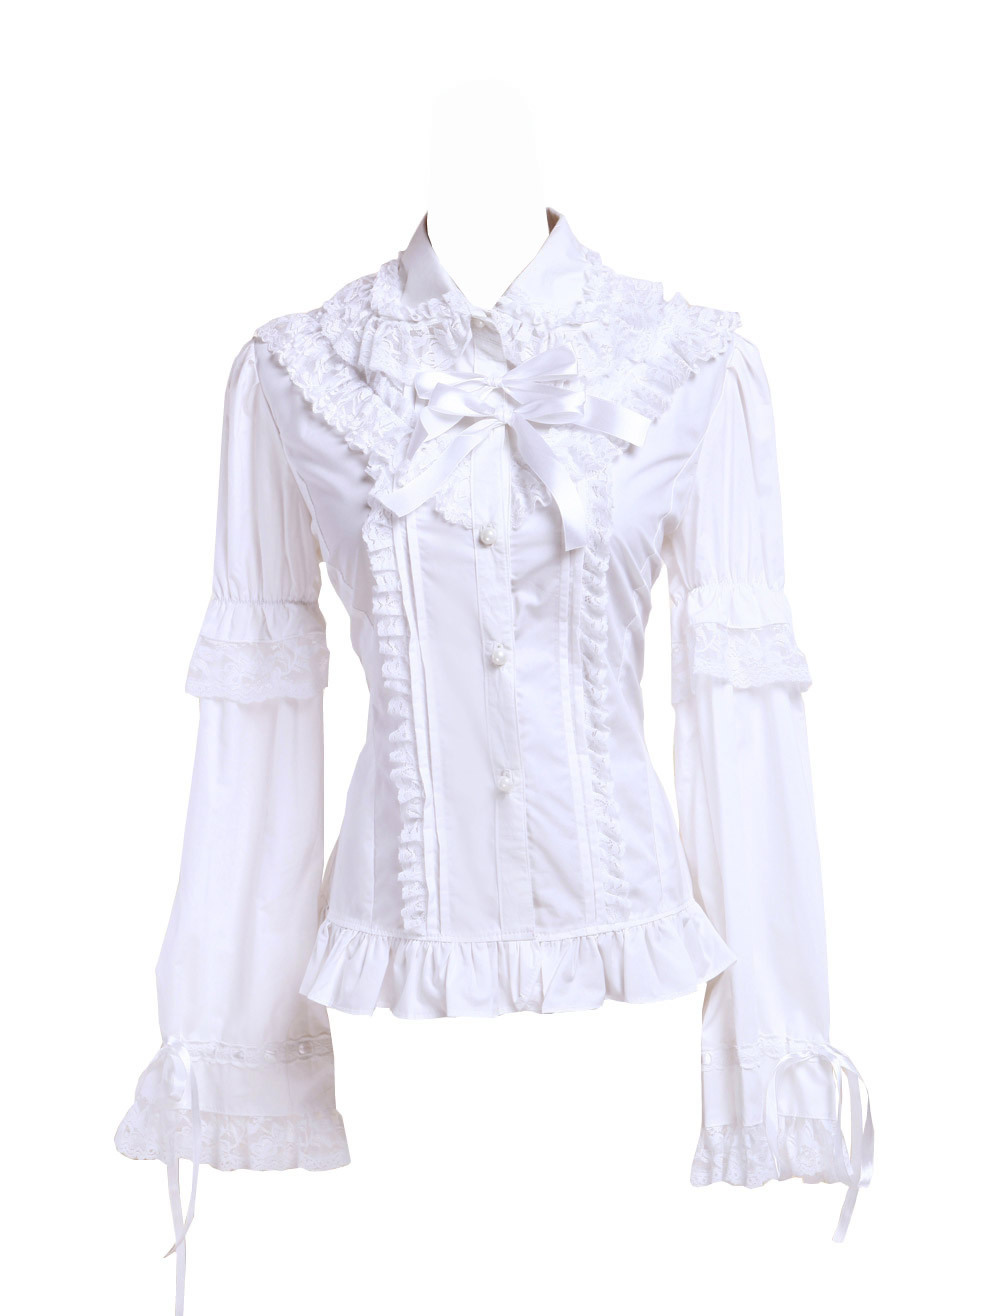 Primary image for White Cotton Lace Ruffle Bow Retro Victorian Lolita Shirt Blouse